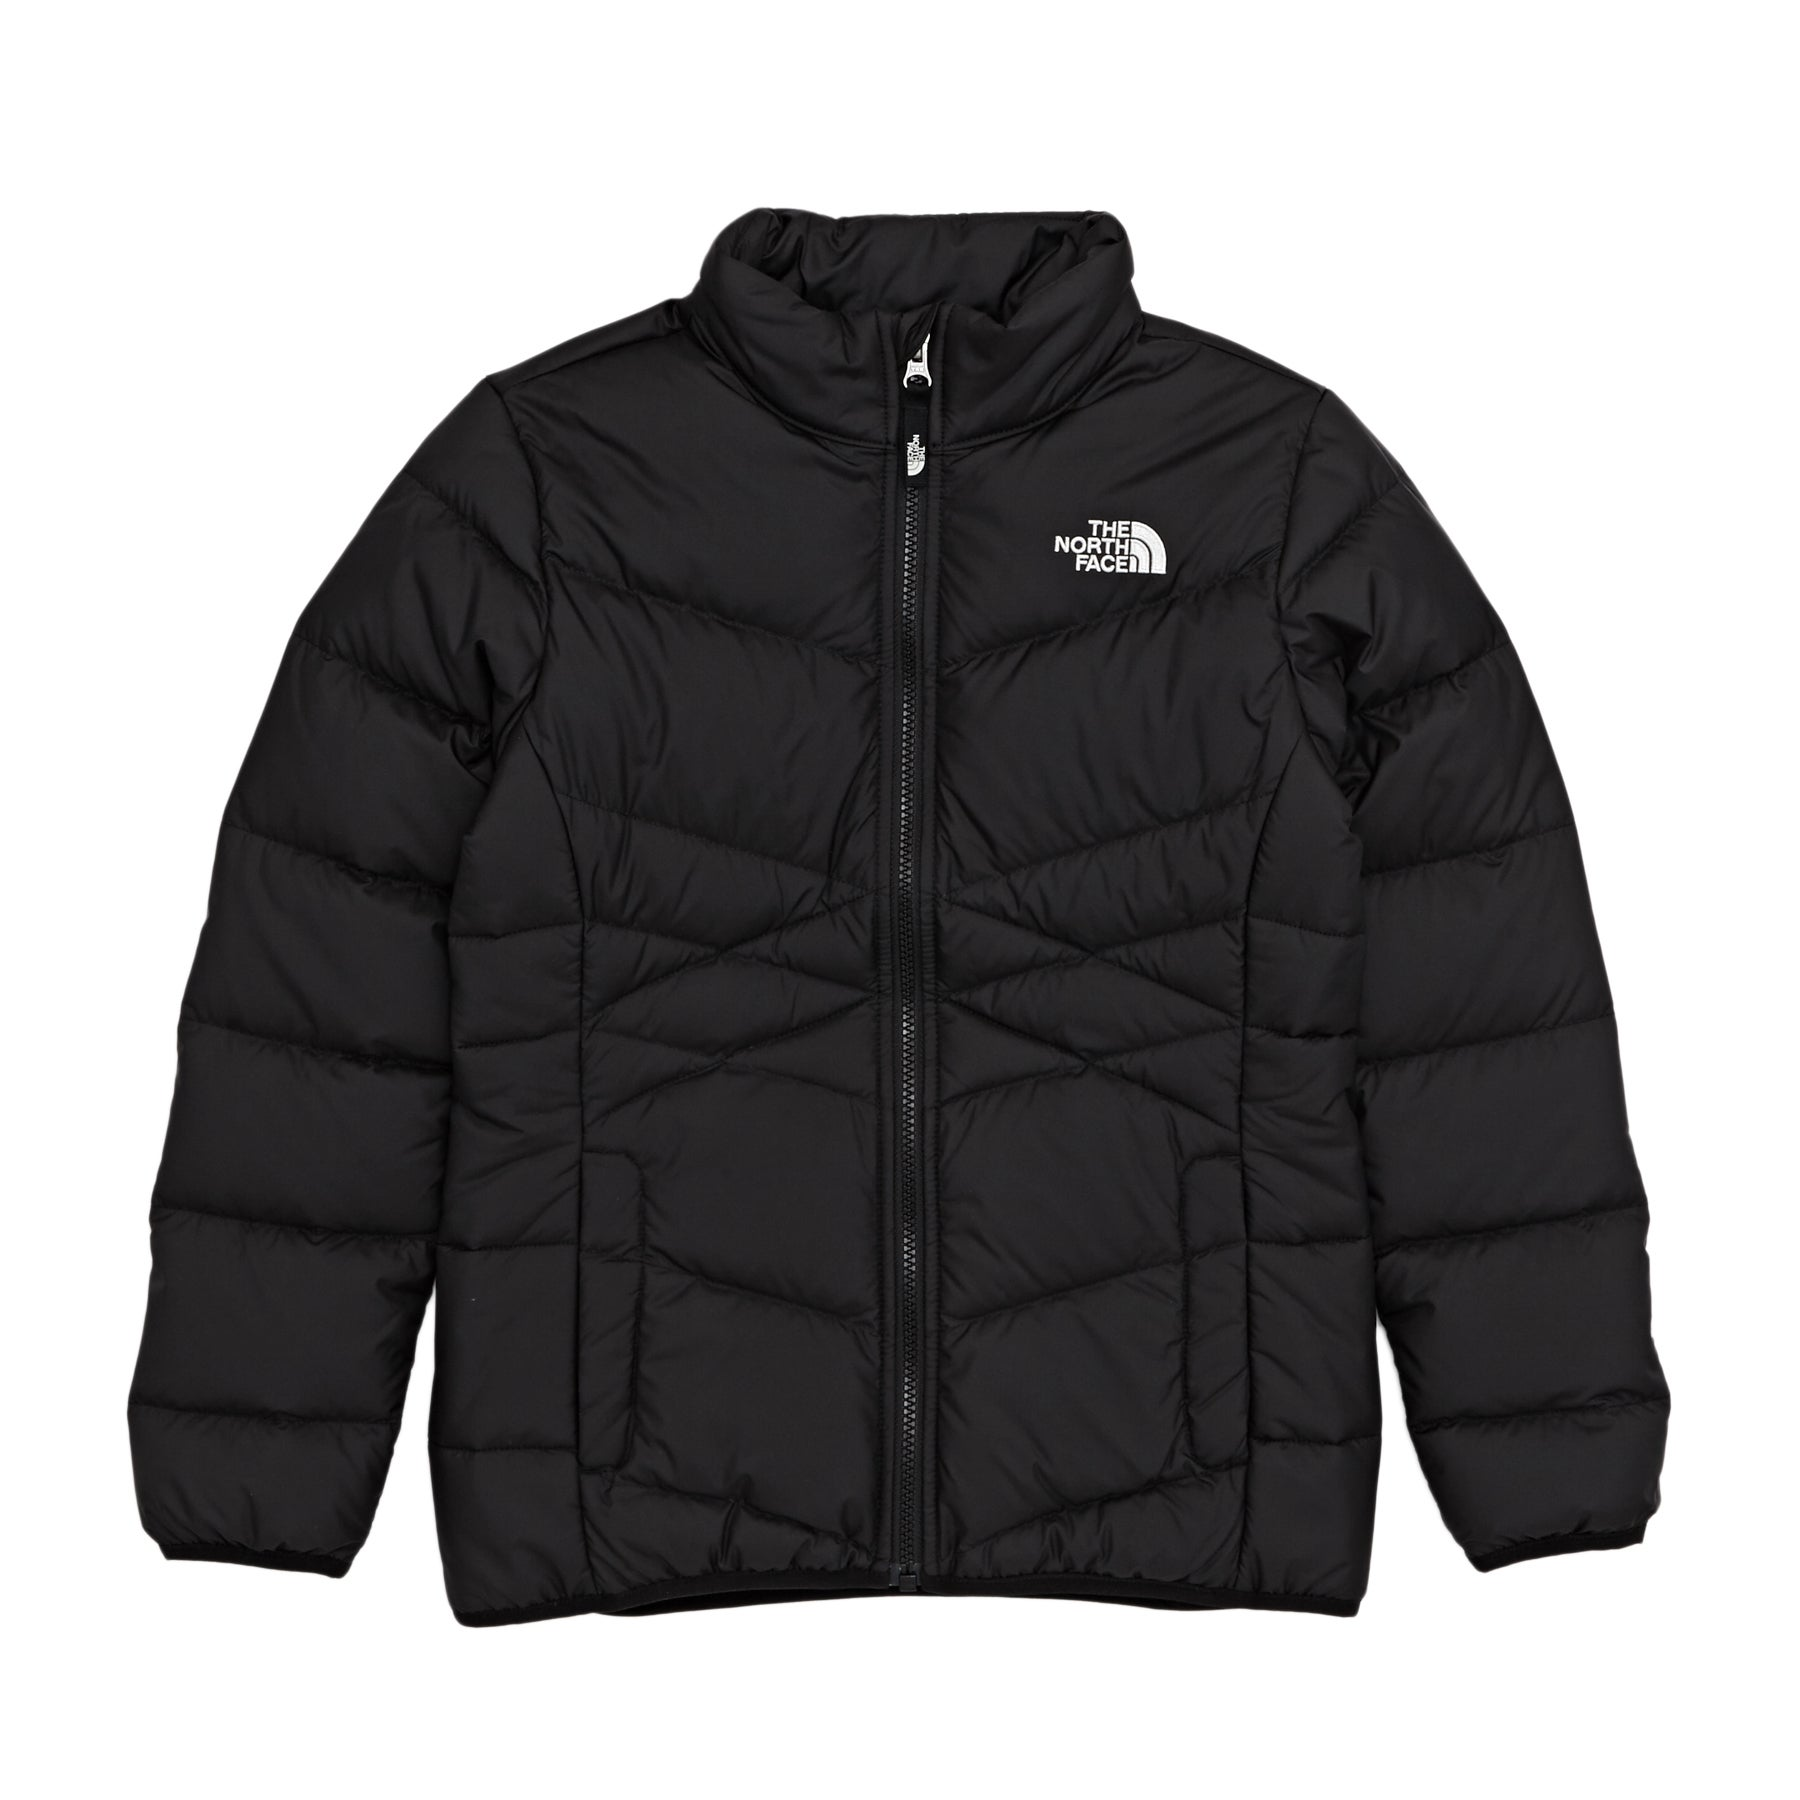 North Face Andes Girls Down Jacket - Tnf Black